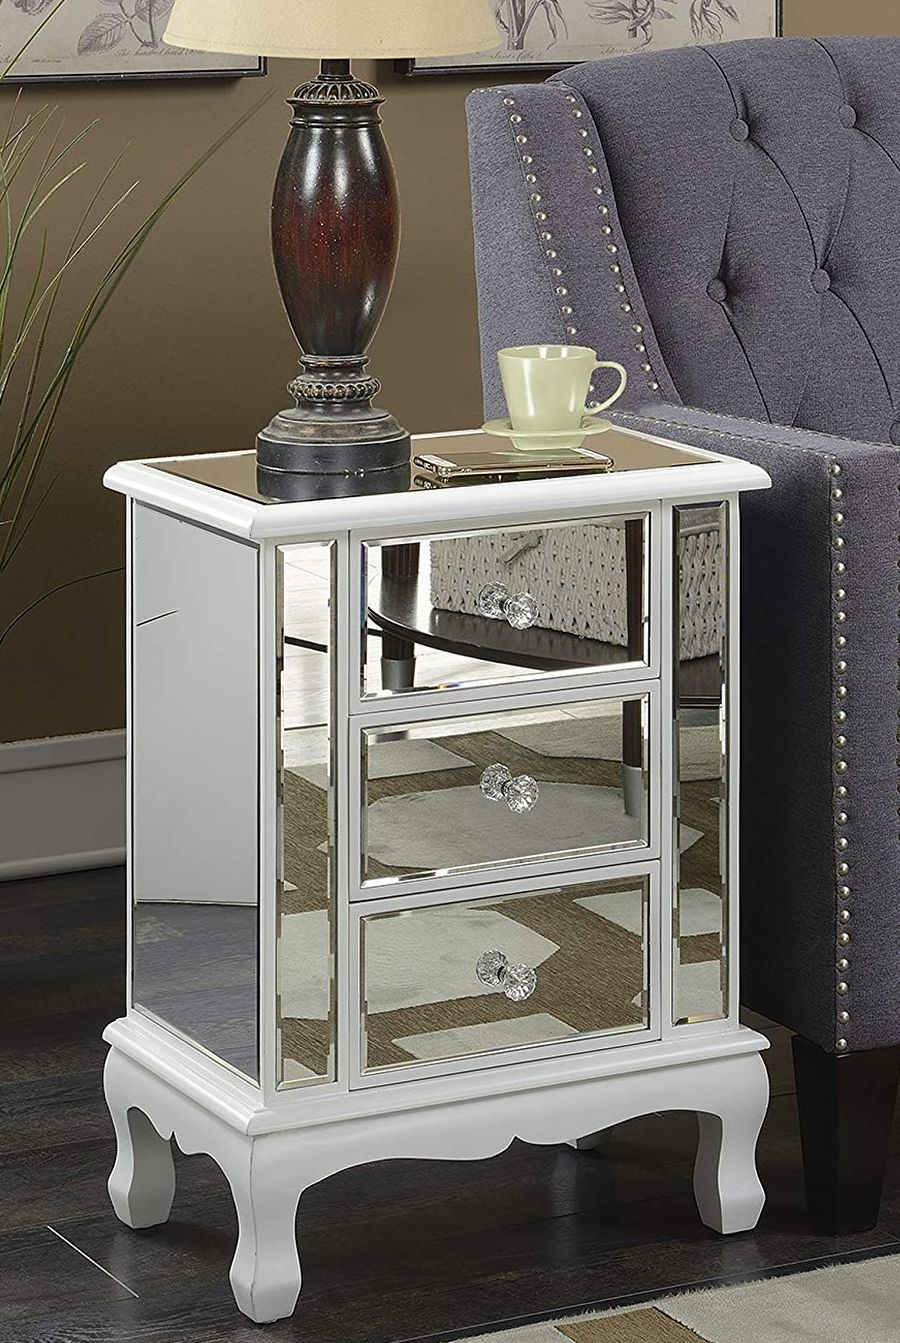 Mirrored End Table Mirrored End Table End Tables Table